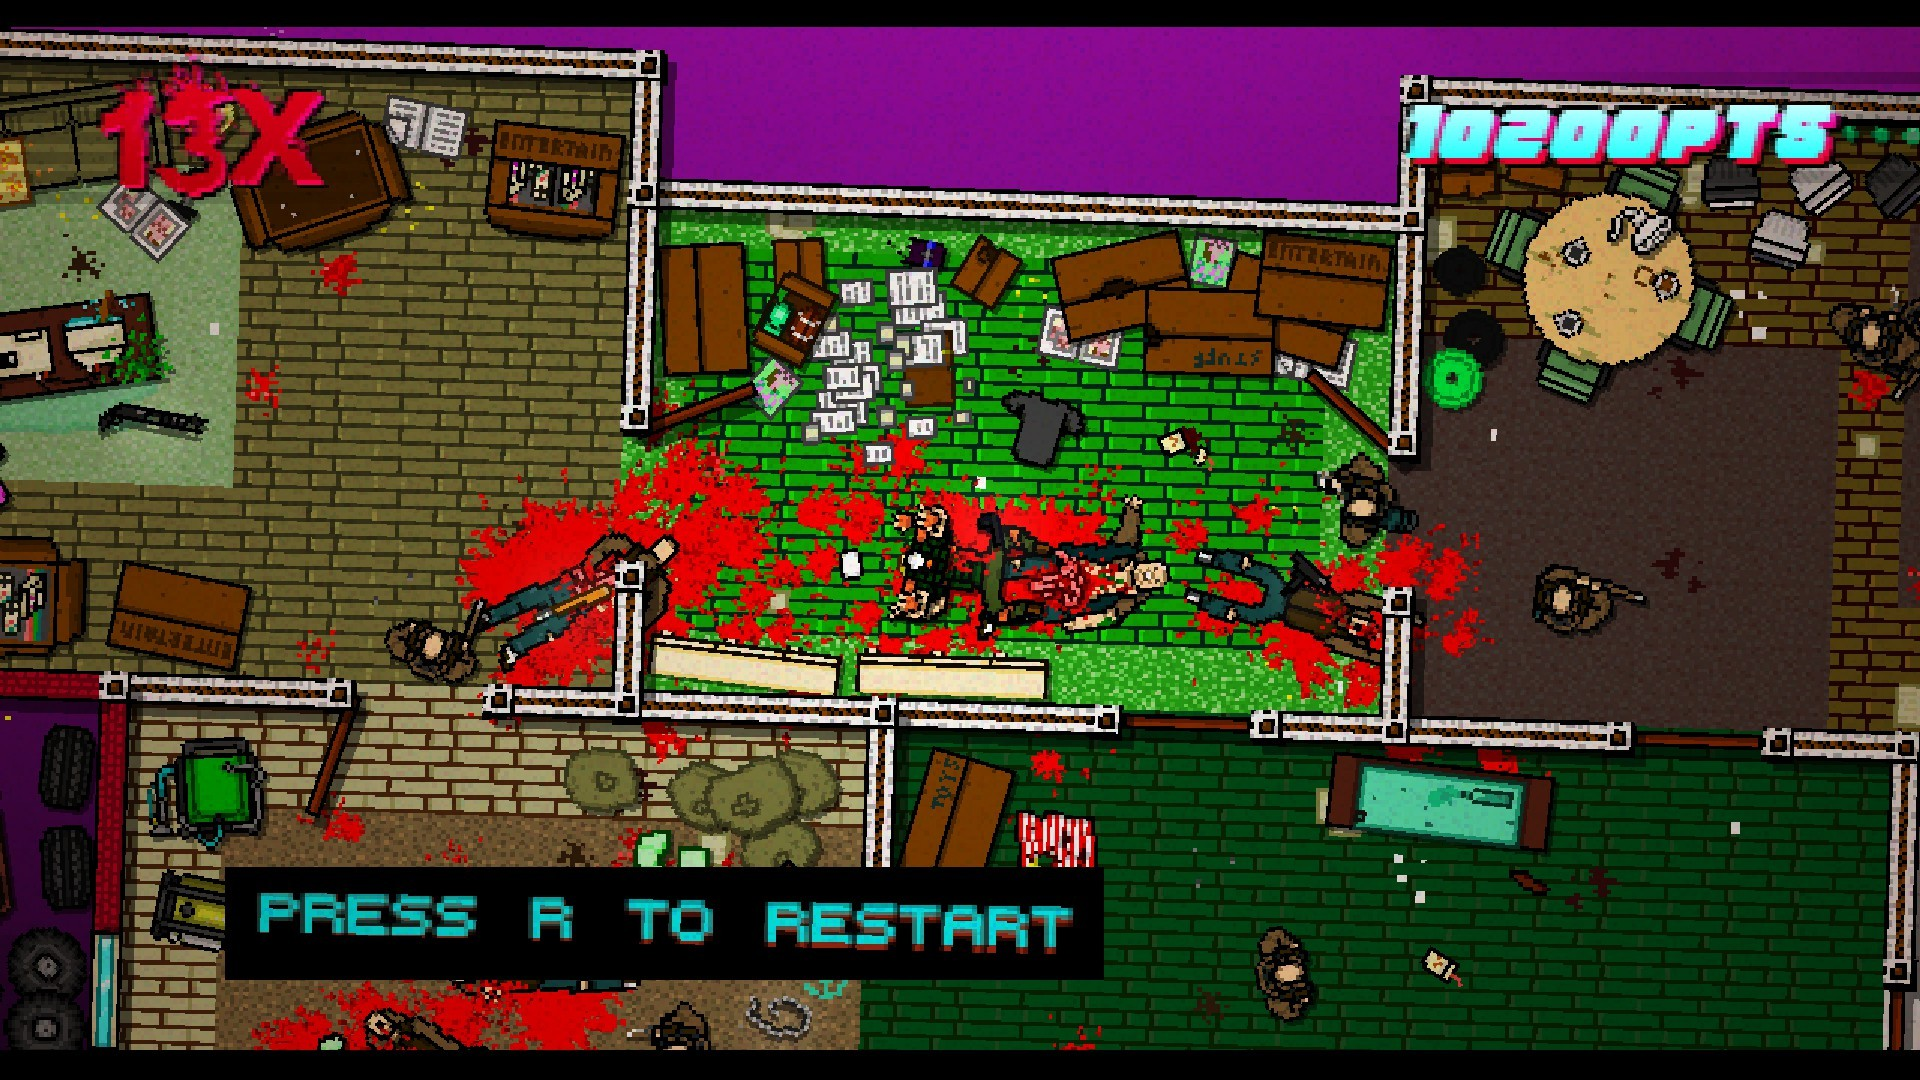 Hotline miami 2 level editor beta: busted (+download link) youtube.